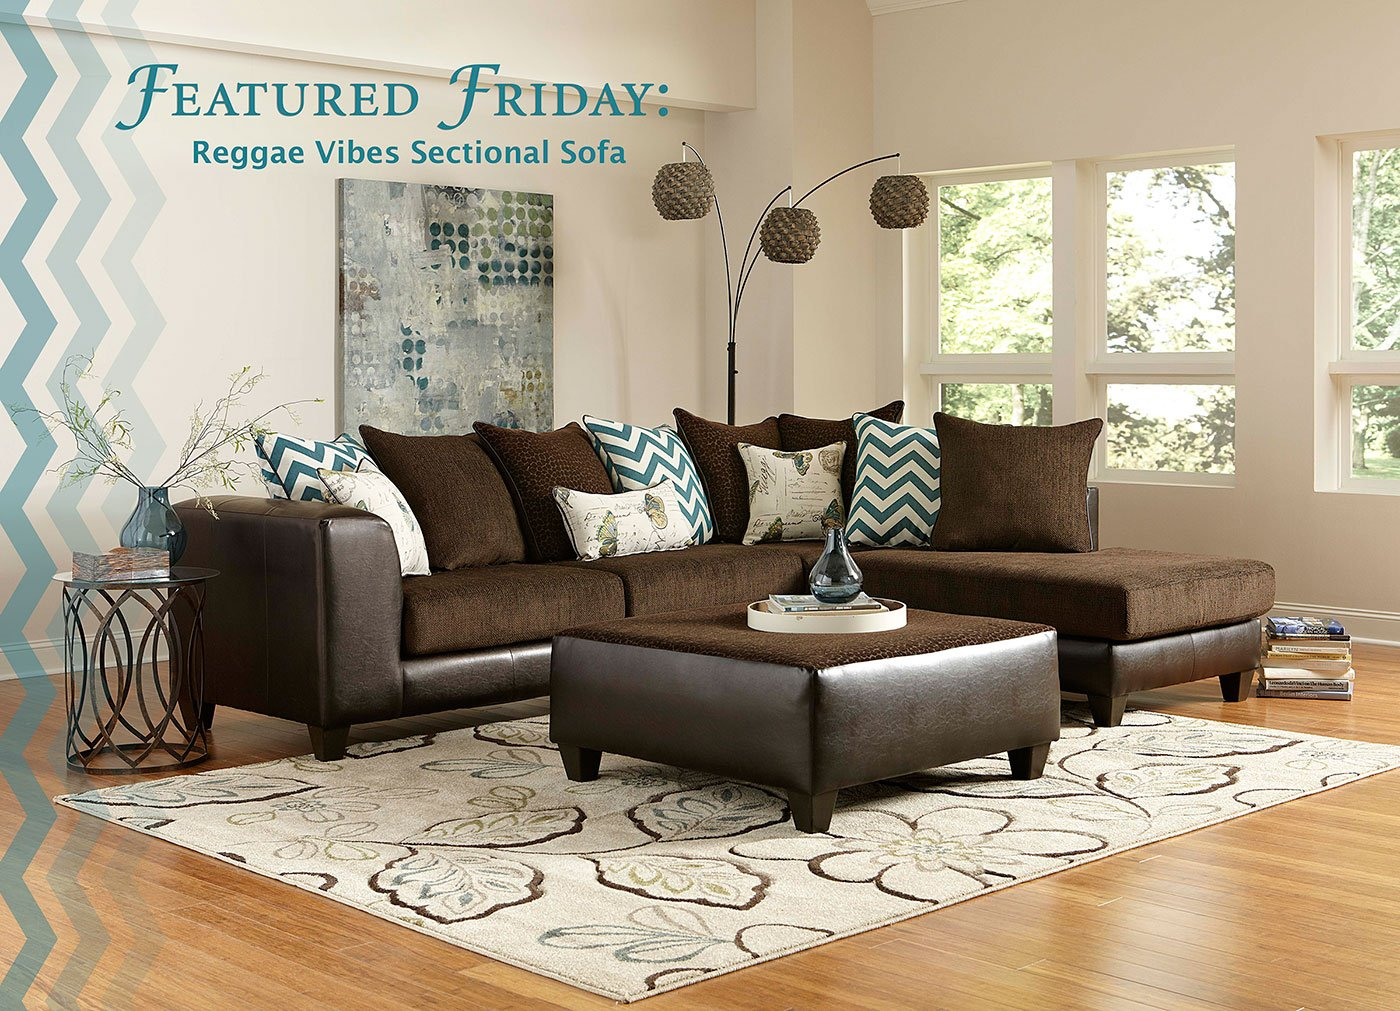 Featured Friday: Reggae Vibes 2 Piece Sectional Sofa